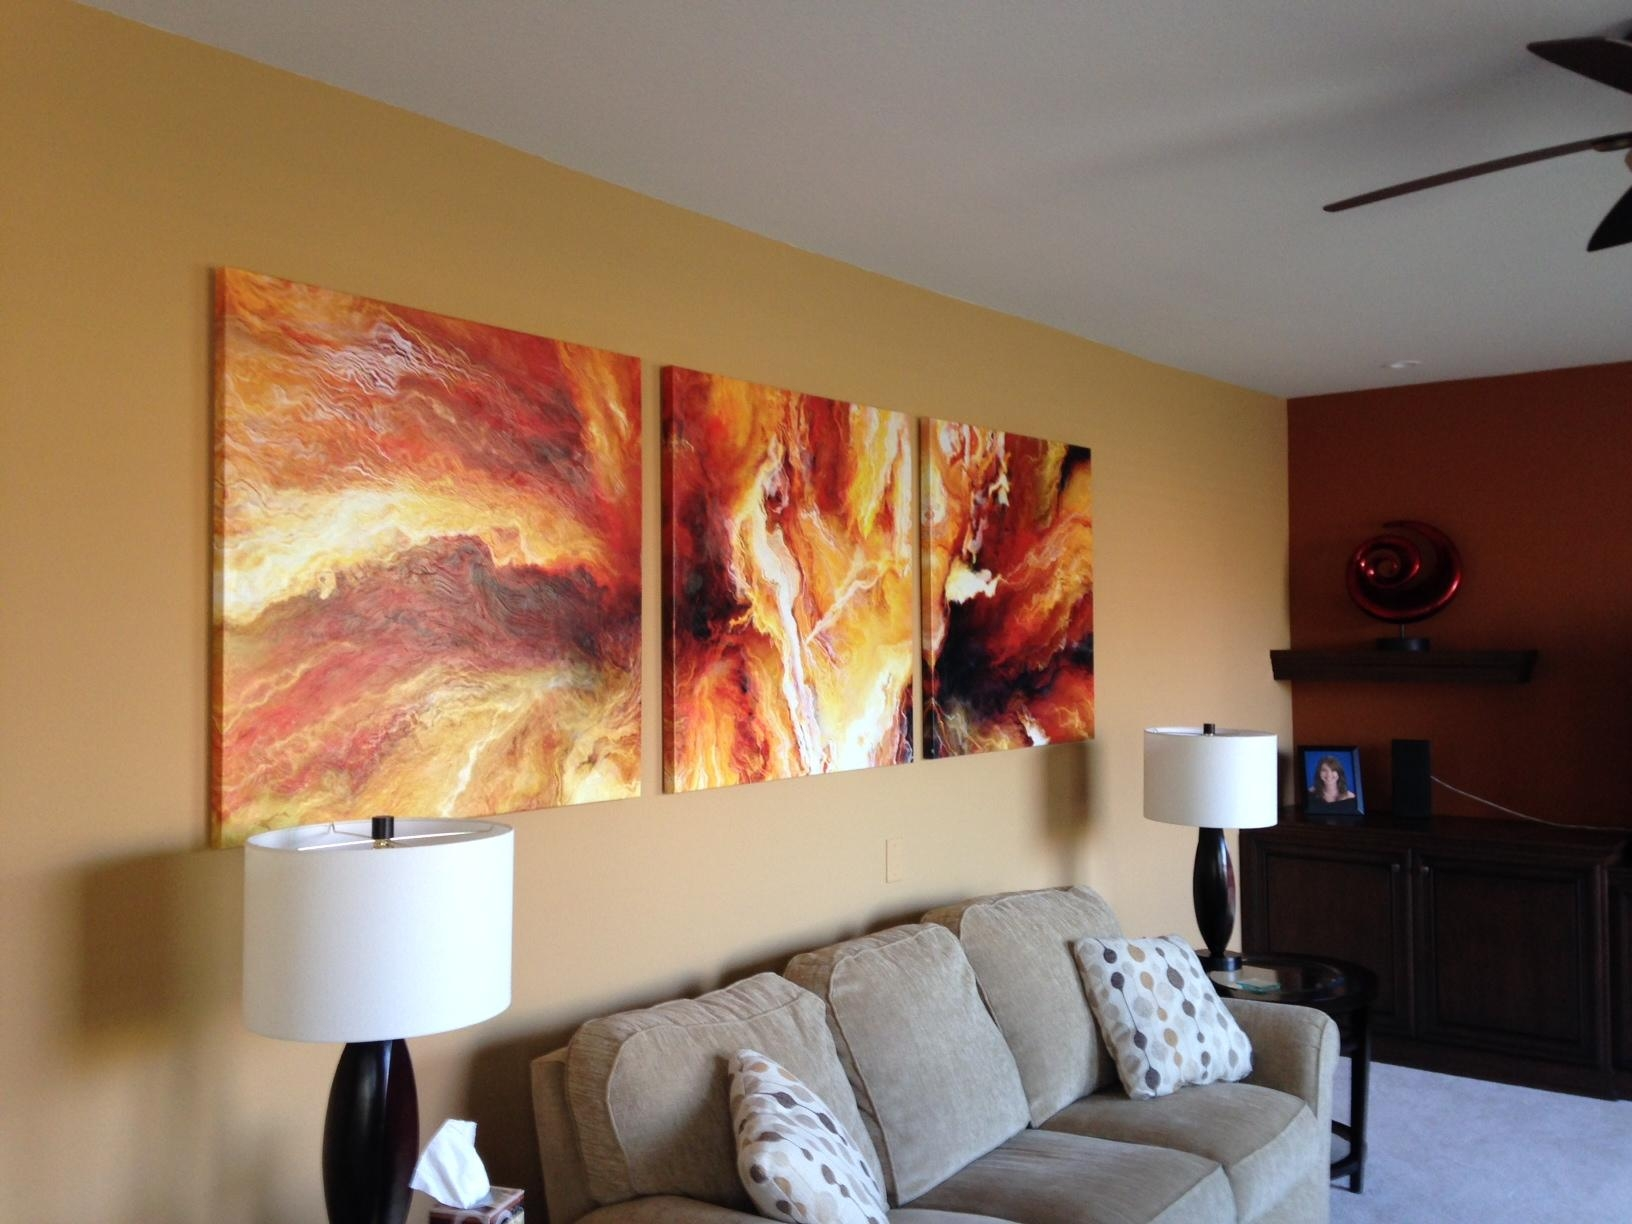 Panel Large Abstract Painting Art Canvas Print Triptych Living Room Within Triptych Art For Sale (View 3 of 20)